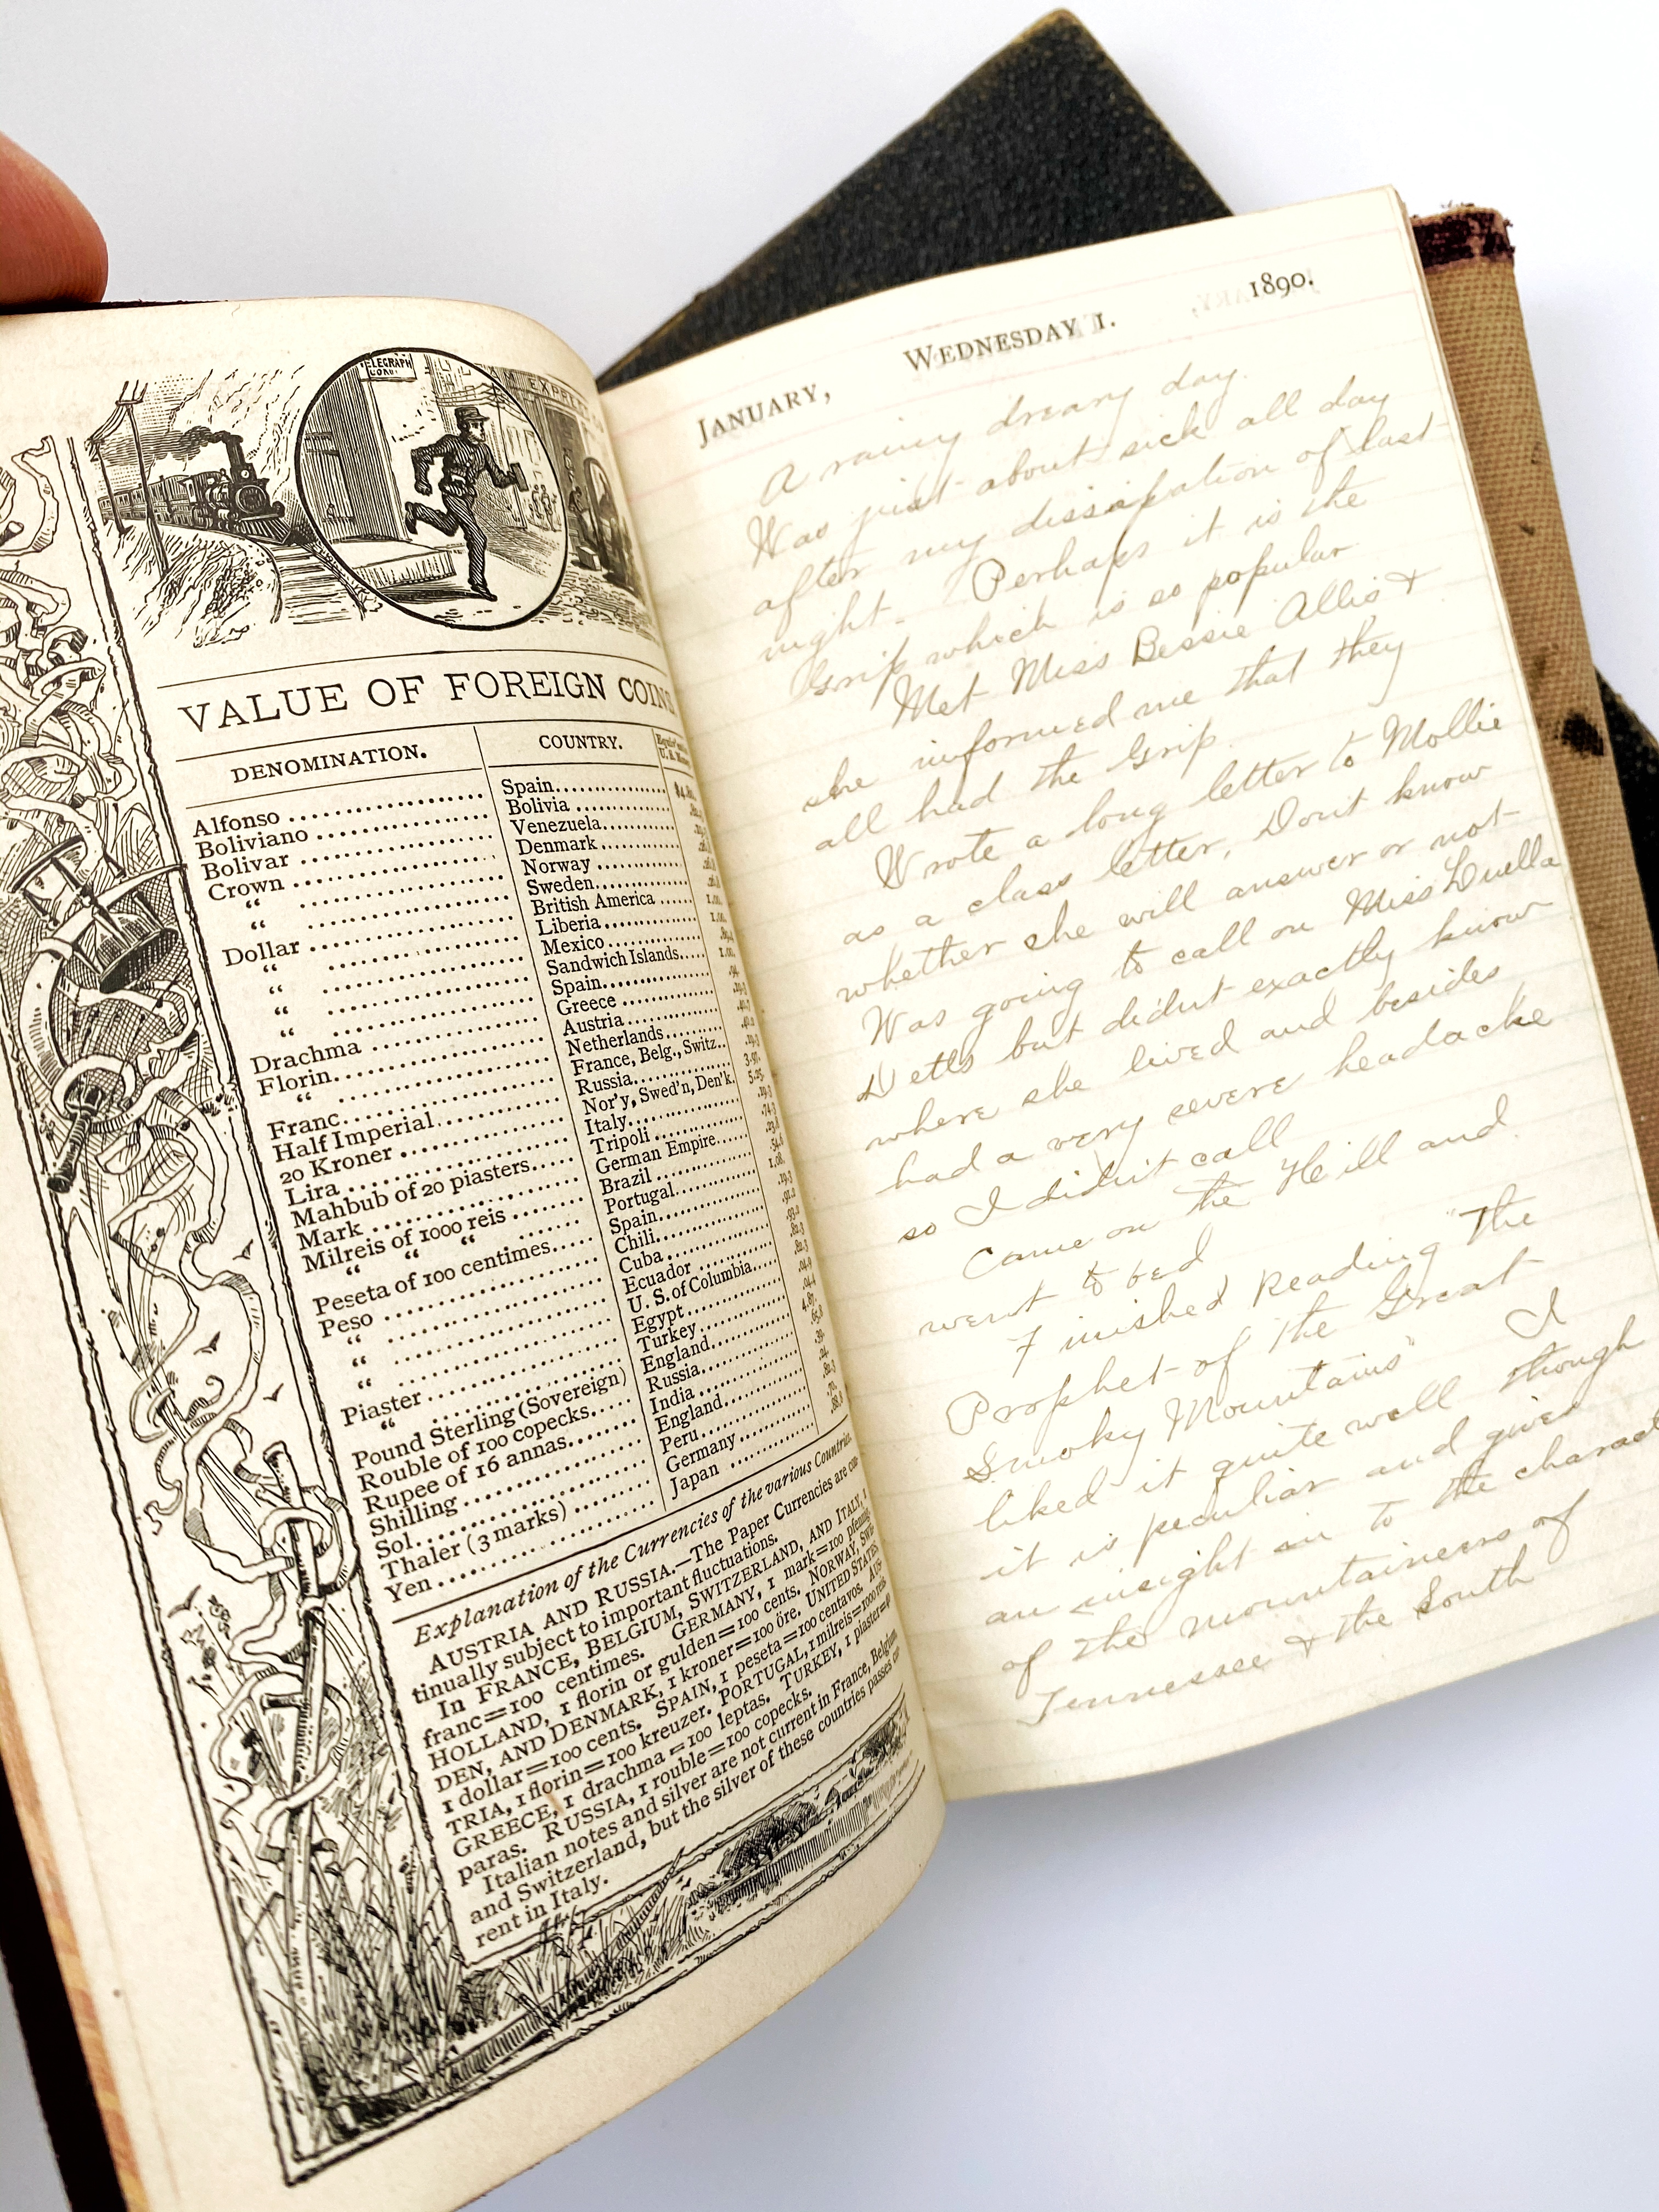 Image for 1890 and 1892 Original Handwritten Diaries by a Lively Michigan Law Student Beginning His Career At the Close of the Nineteenth Century